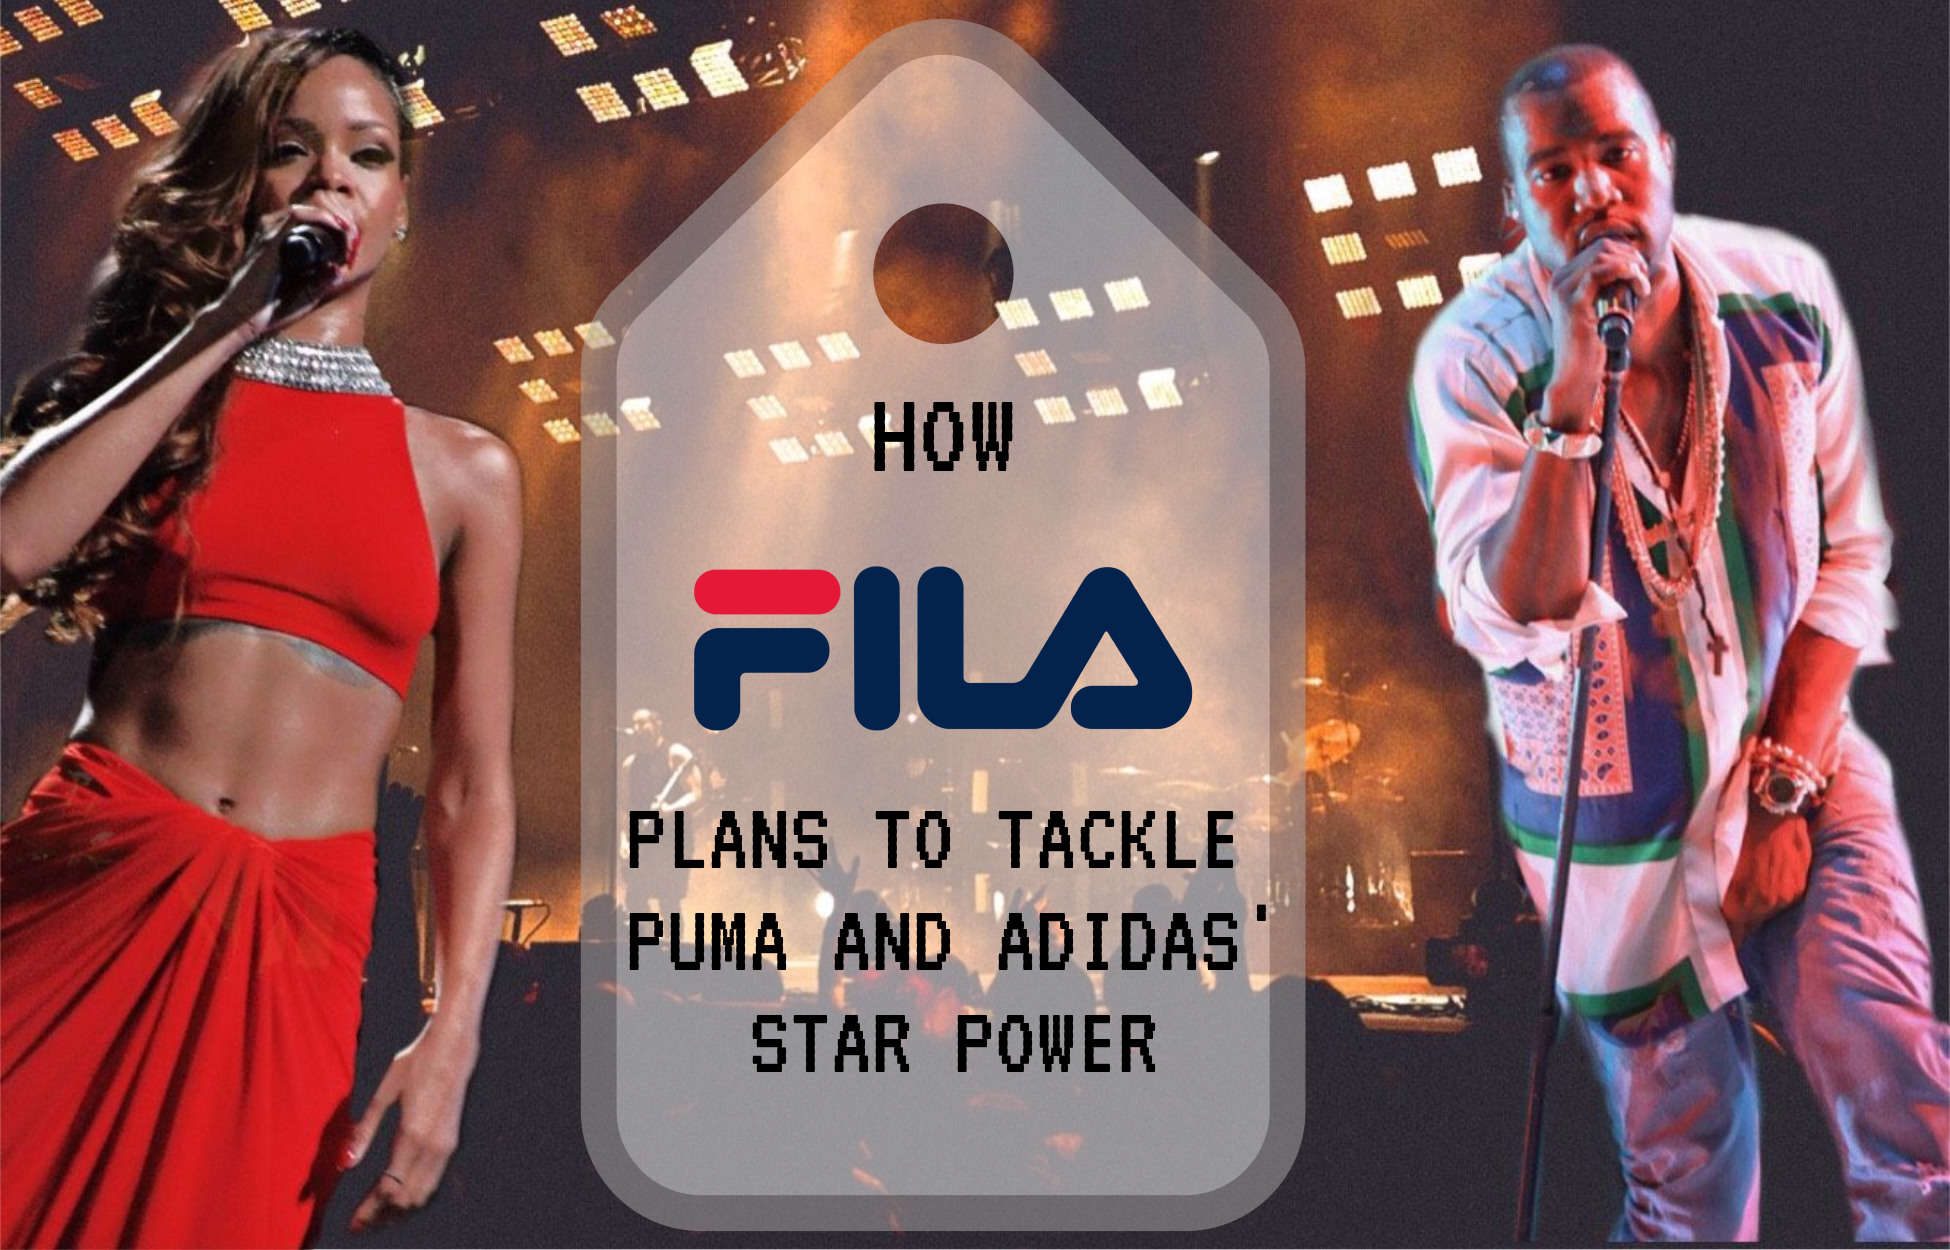 c373c4dc4406ec Here s how FILA plans to tackle Adidas and Puma s star power ...